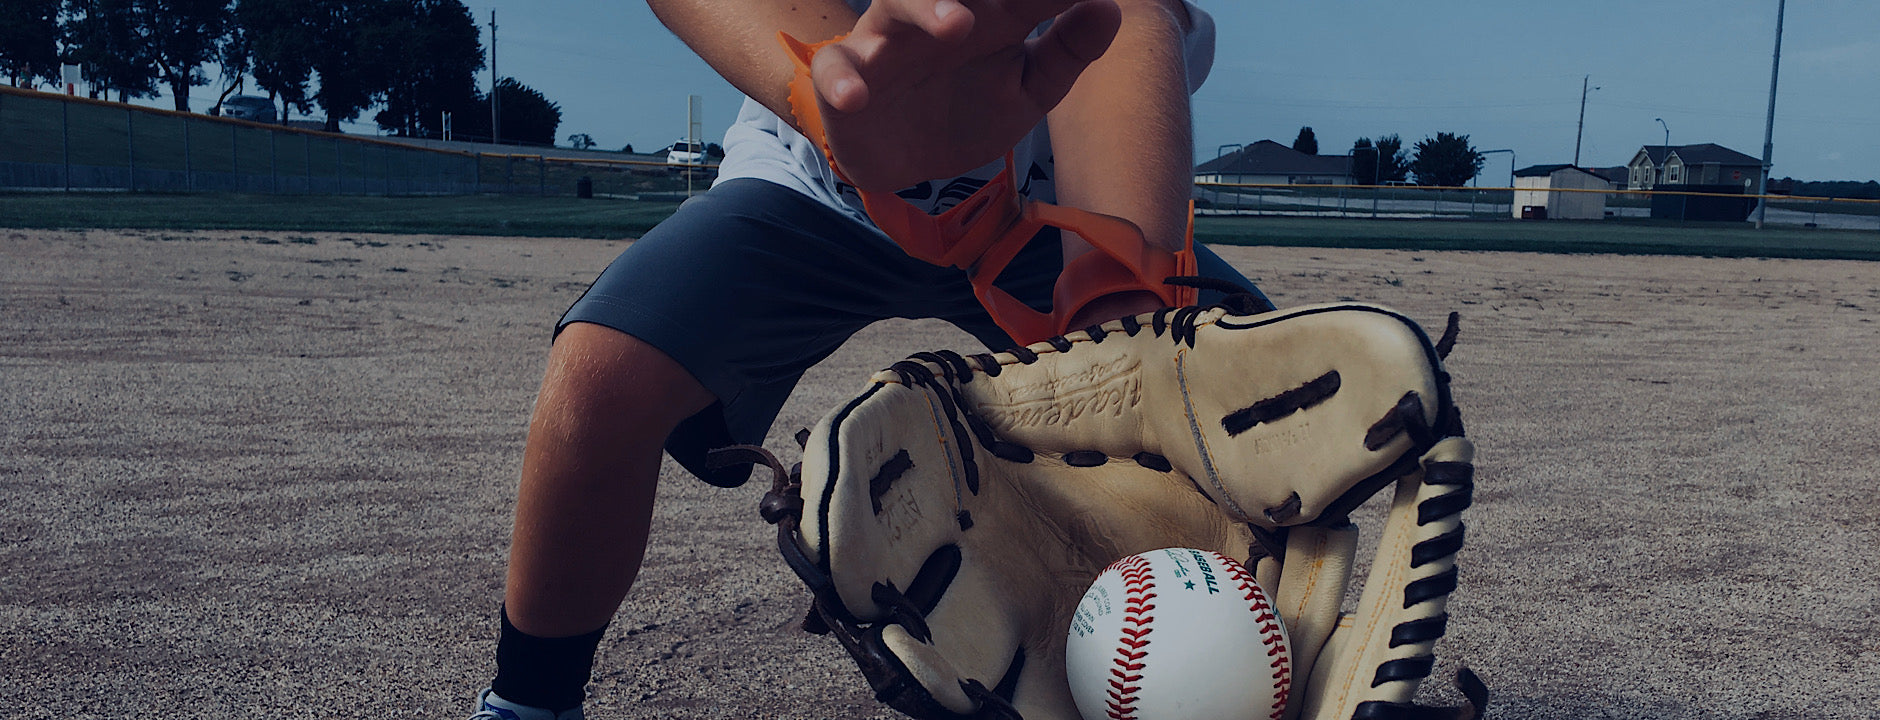 Re-Link two hands fielding aid helps players learn to field with two hands while using their own equipment. It also allows a player to still work on one handed training.